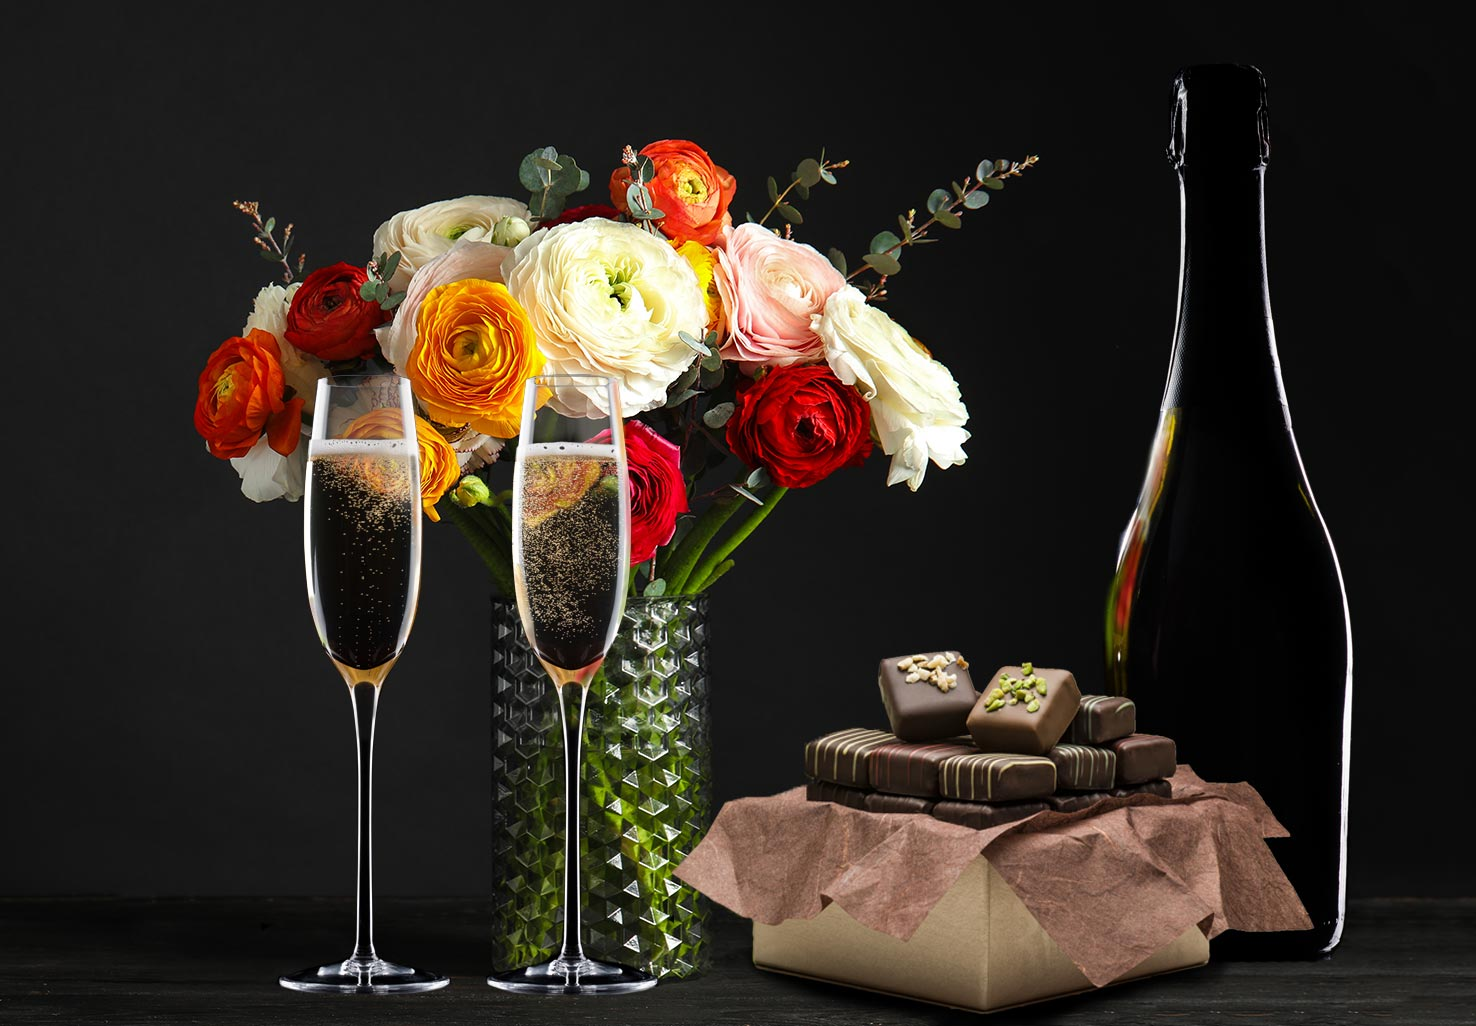 A bouquet of flowers, champagne, and a box of chocolate truffles